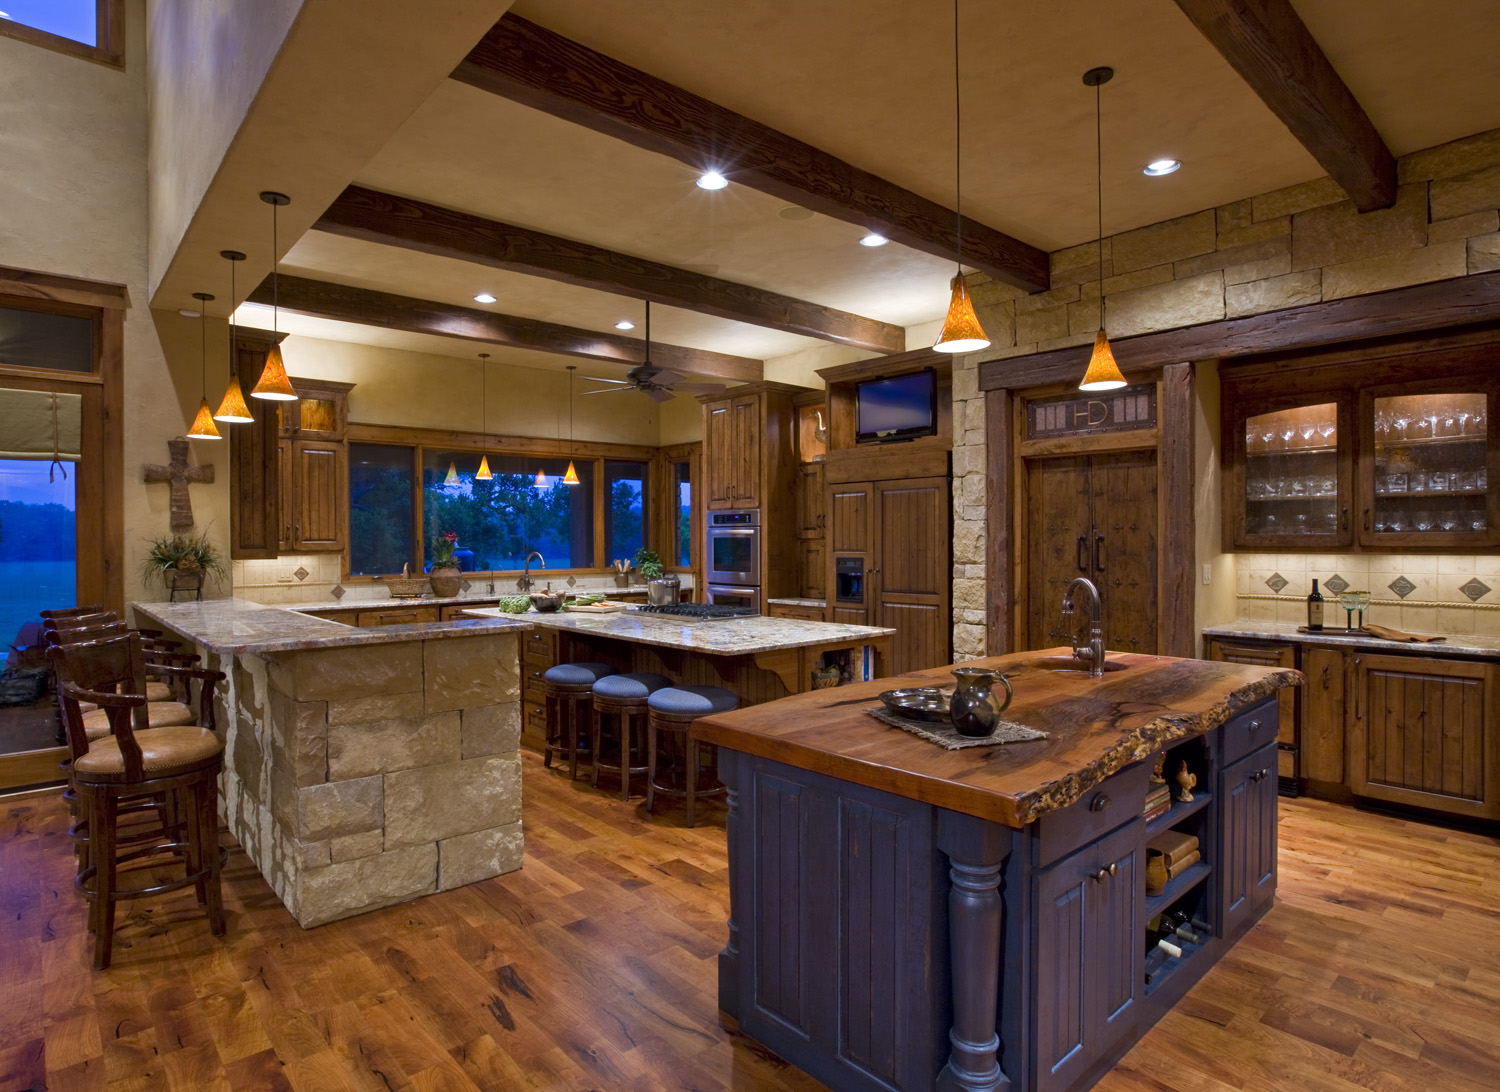 Texas ranch house linda mccalla interiors Home kitchen